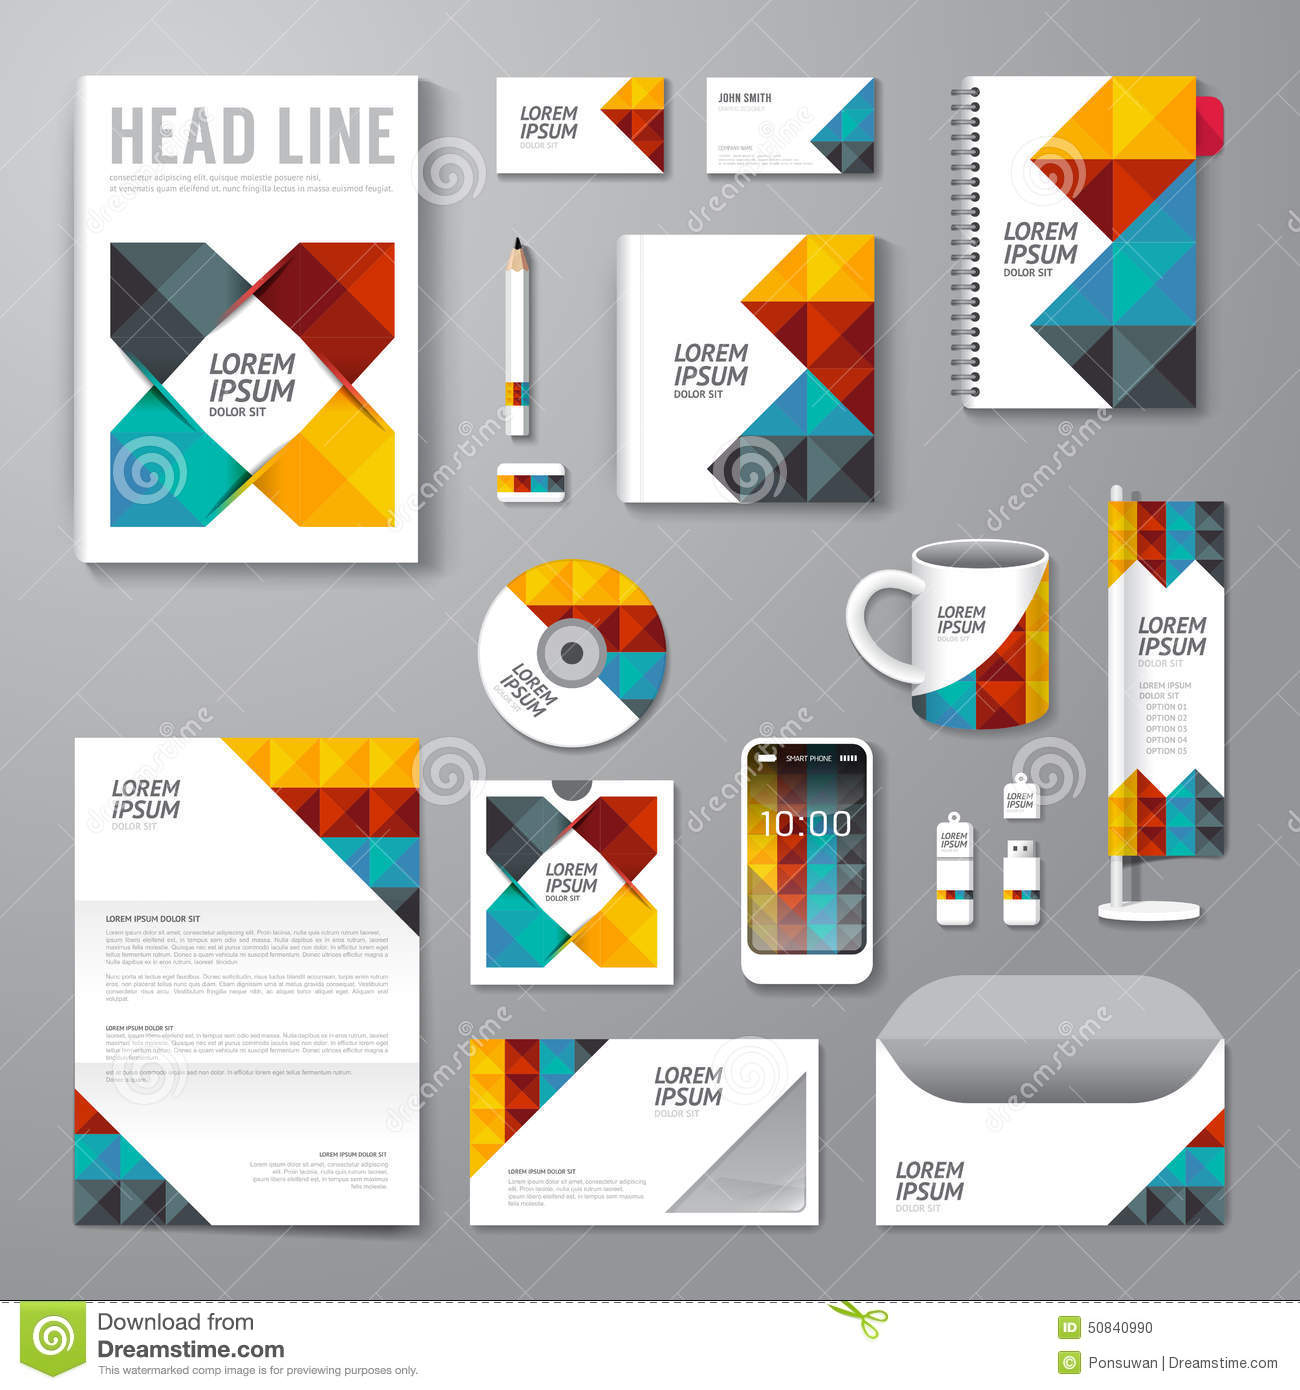 Poster design vector graphics - Royalty Free Vector